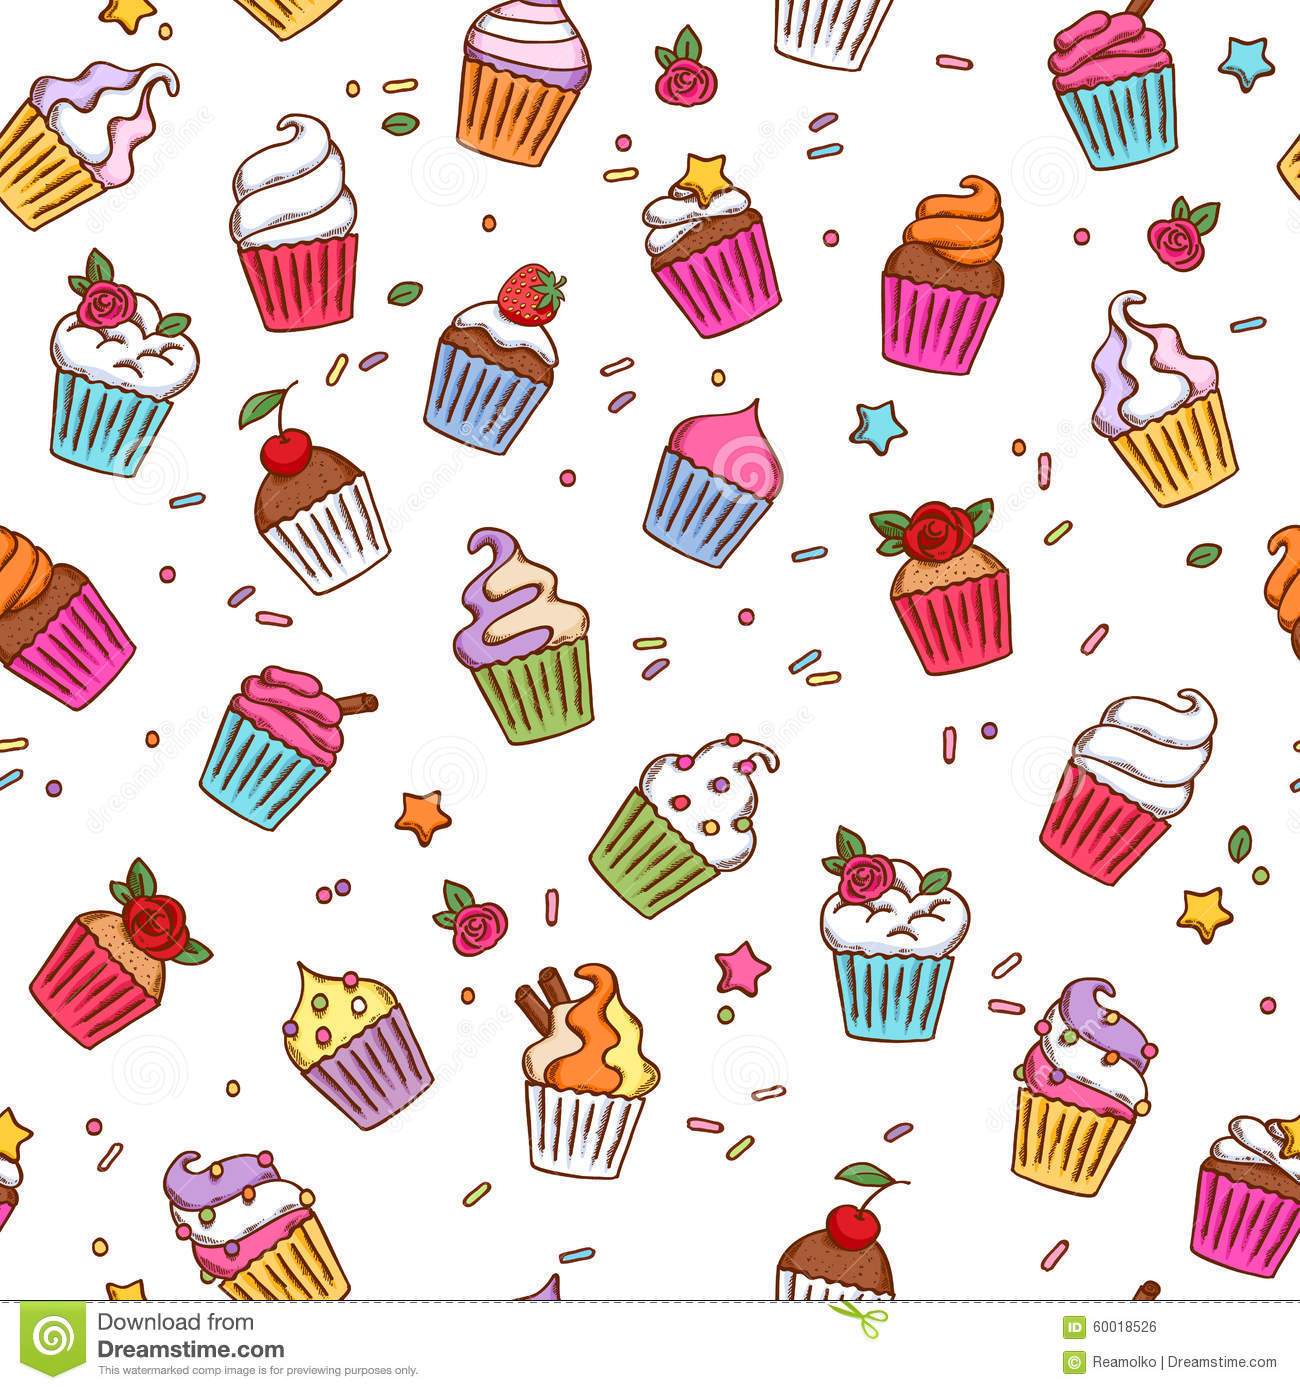 Cute Cupcake Wallpaper Colorful Sketch Doodle Style Cupcakes Pattern Stock Vector